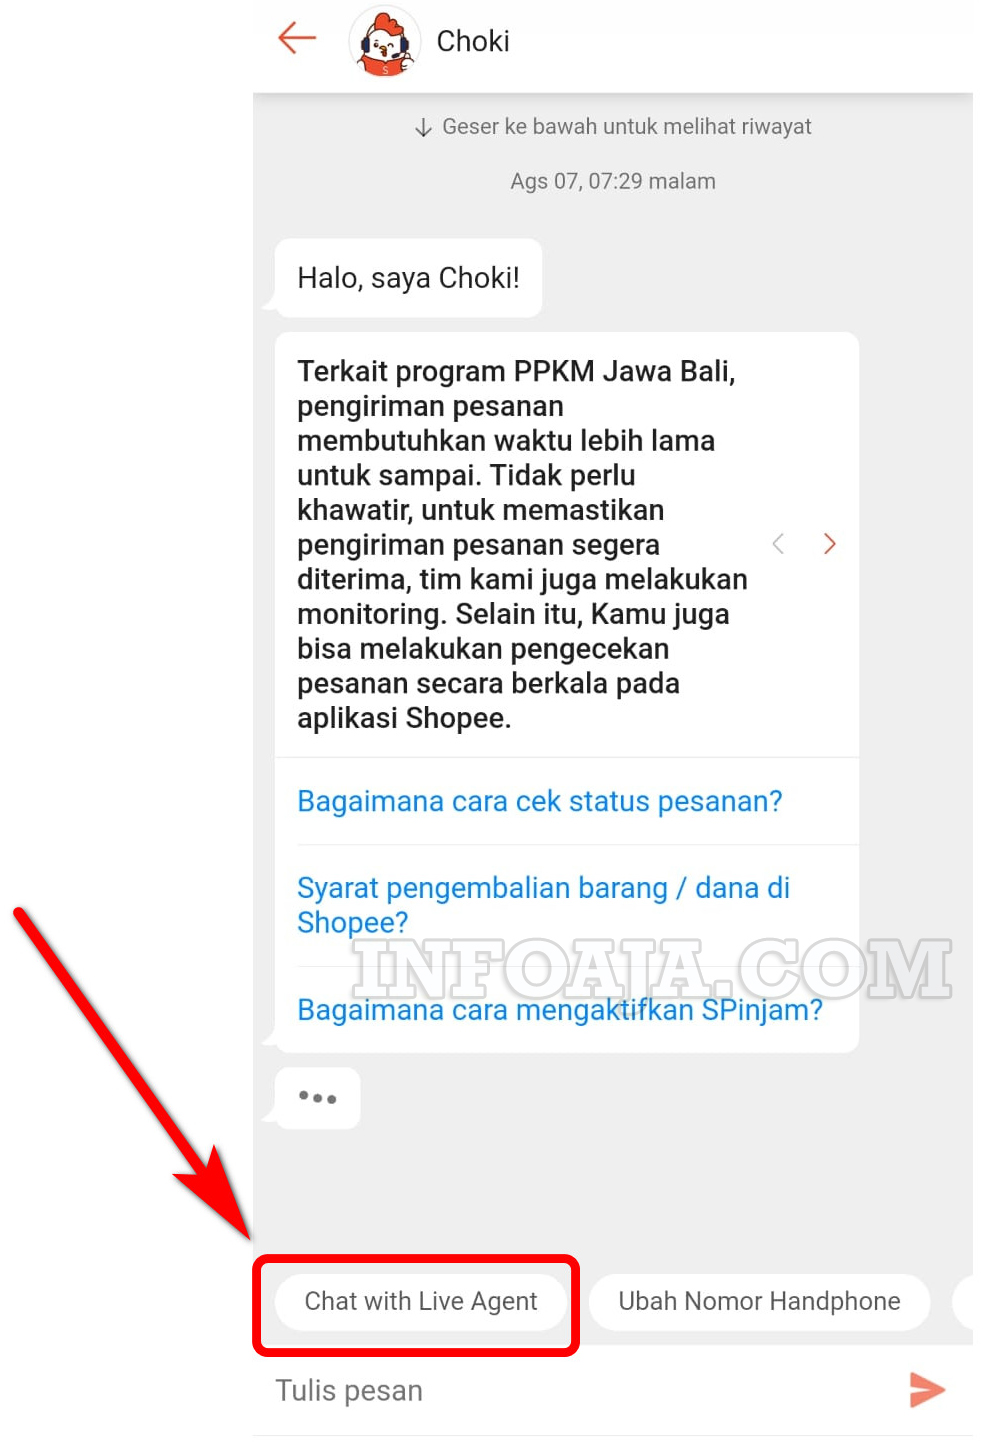 chat with live agent